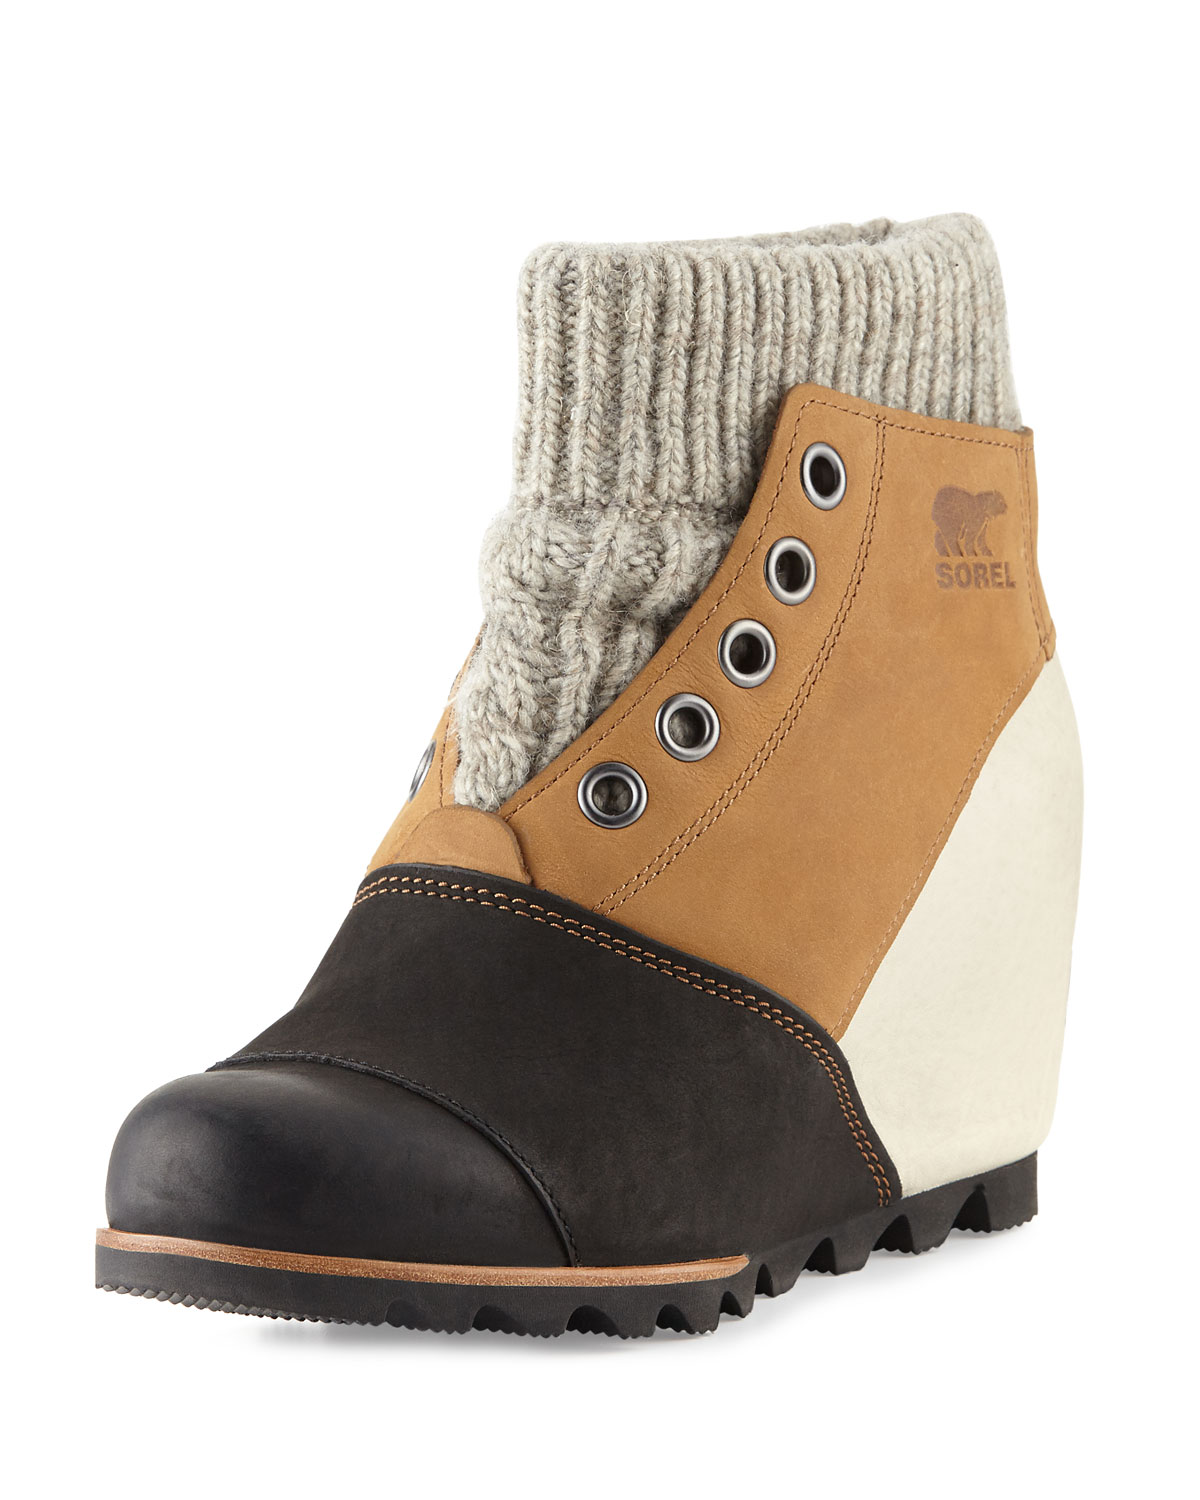 6c96cd0a3a9 Sorel Joanie™ Sweater Wedge Bootie